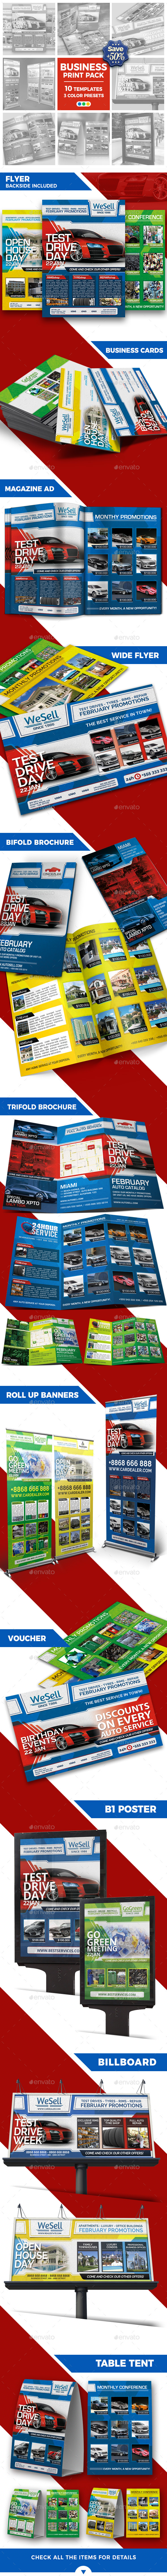 Sales and Services - Business Advertising Bundle - Print Templates